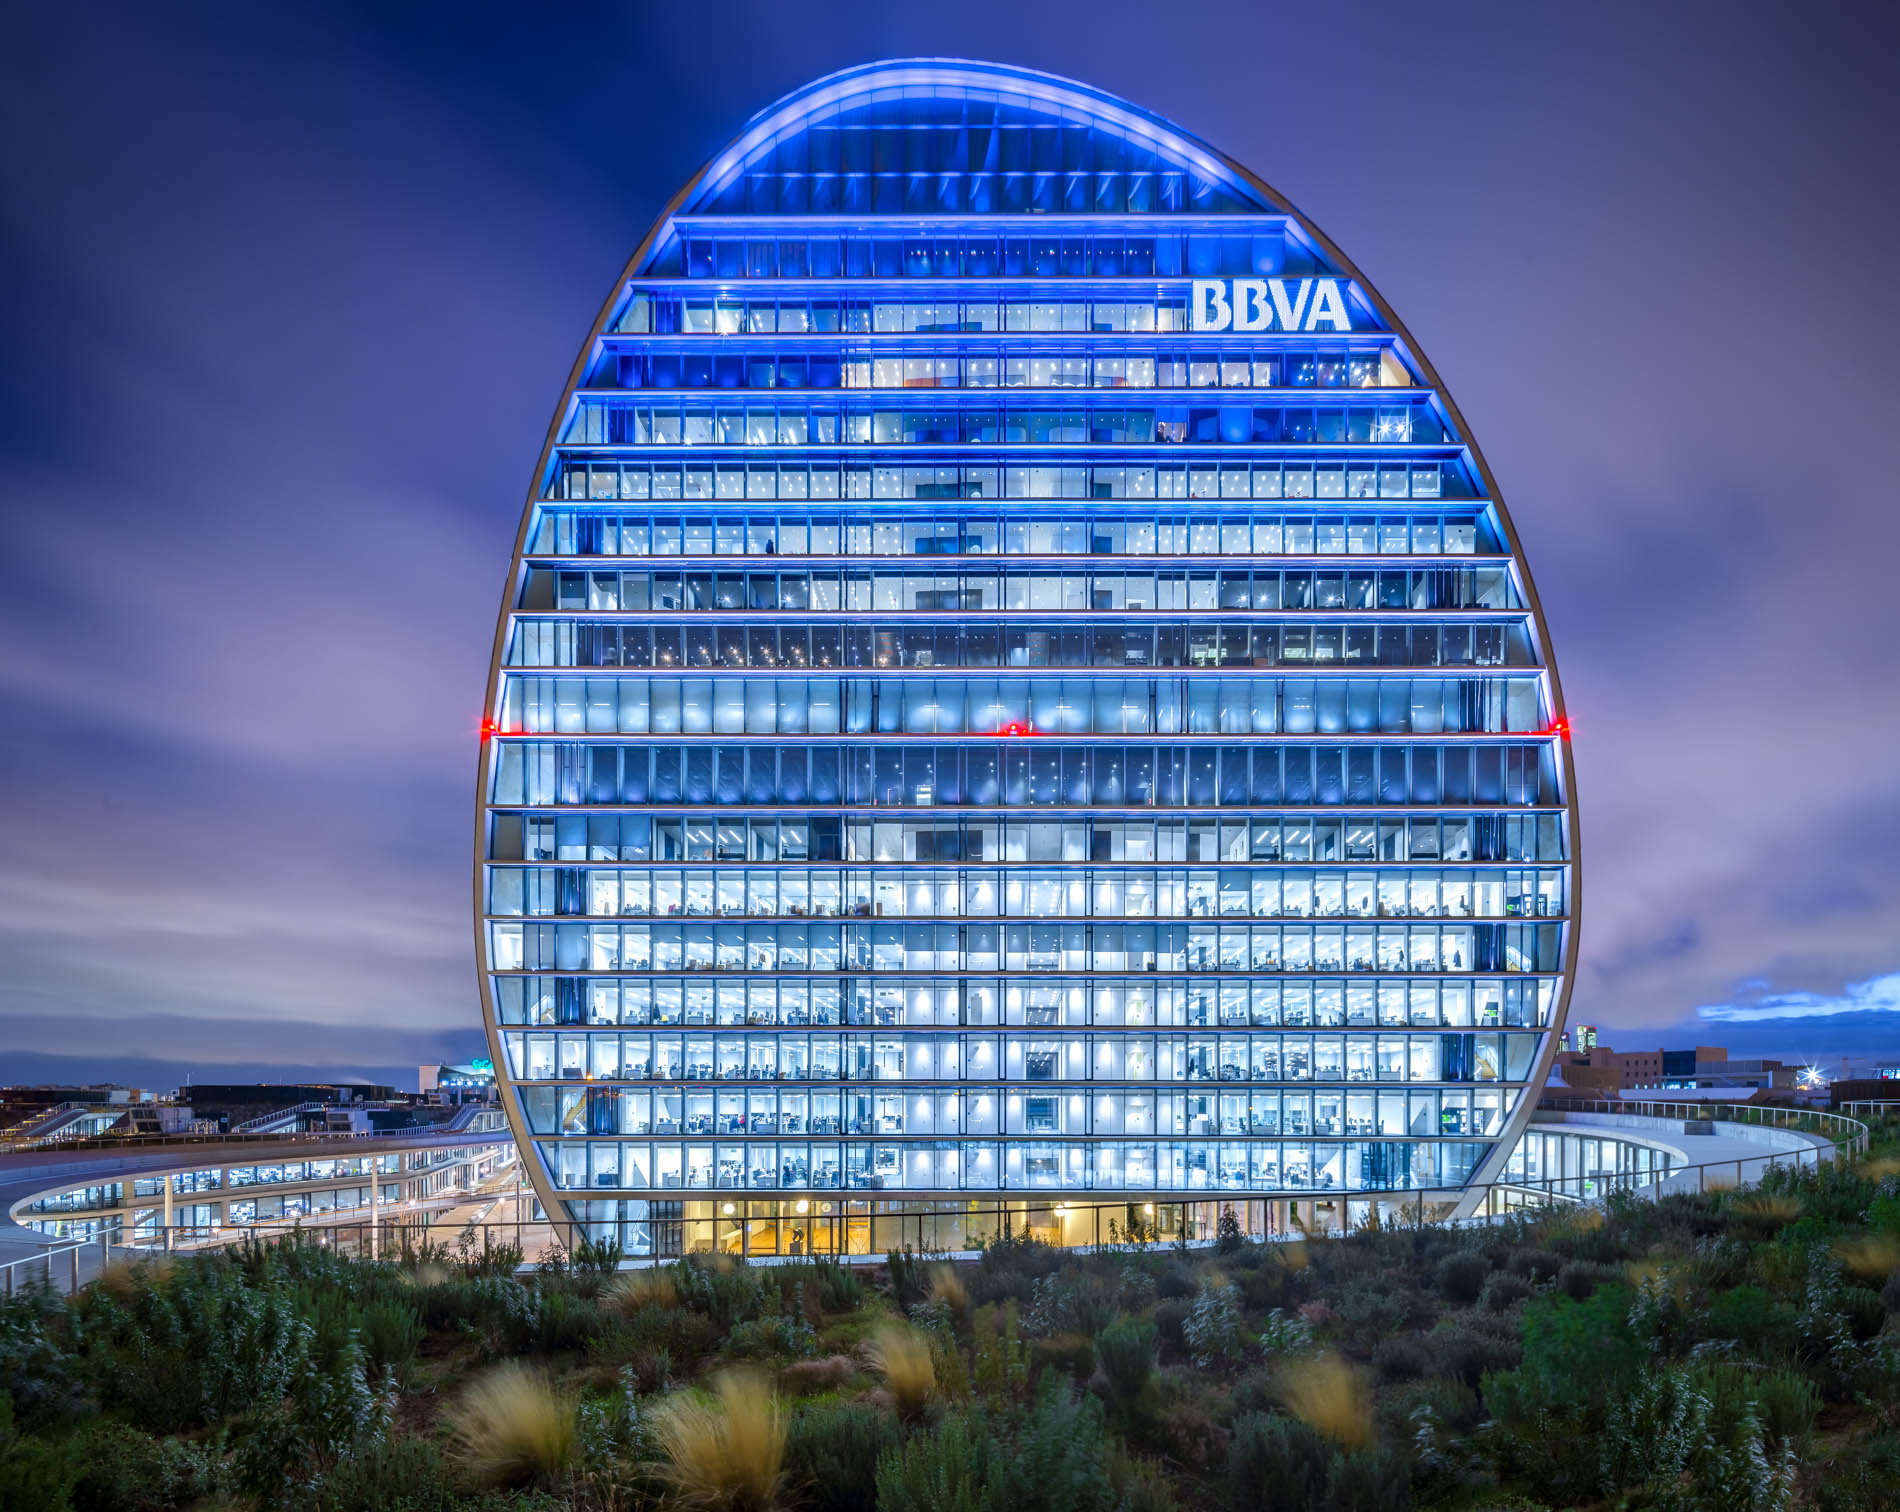 https://accionistaseinversores.bbva.com/wp-content/uploads/2017/06/BBVA-HEADQUARTERS-MADRID-149-1.jpg